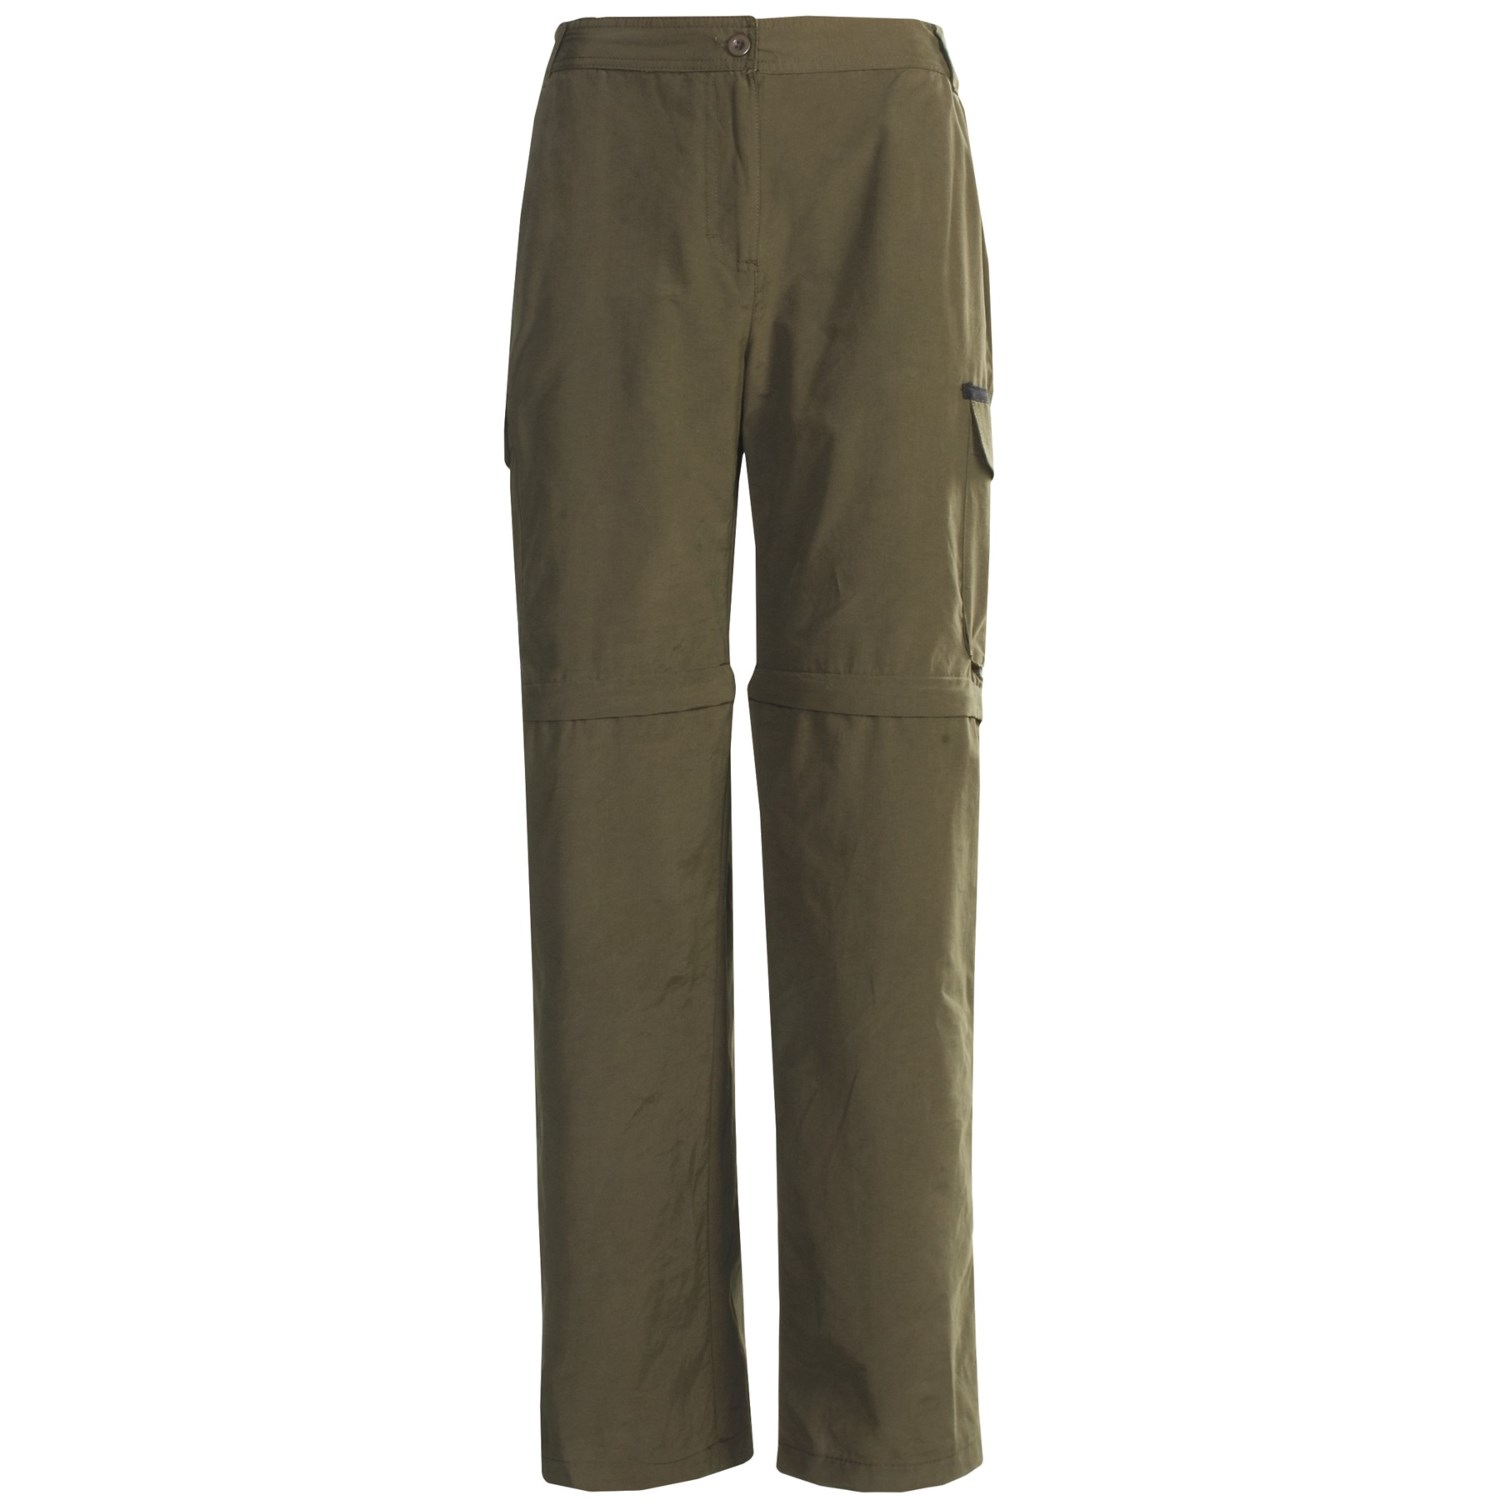 New While Guys Seem To Have Plenty Of Options, If Youre Looking For The Best Hiking Pants For Women It Can Be A Little  And They Look Better Than Pants That Zip Off Too Short Finding A Pair Of Hiking Pants For Women That Has Both A Good Fit As